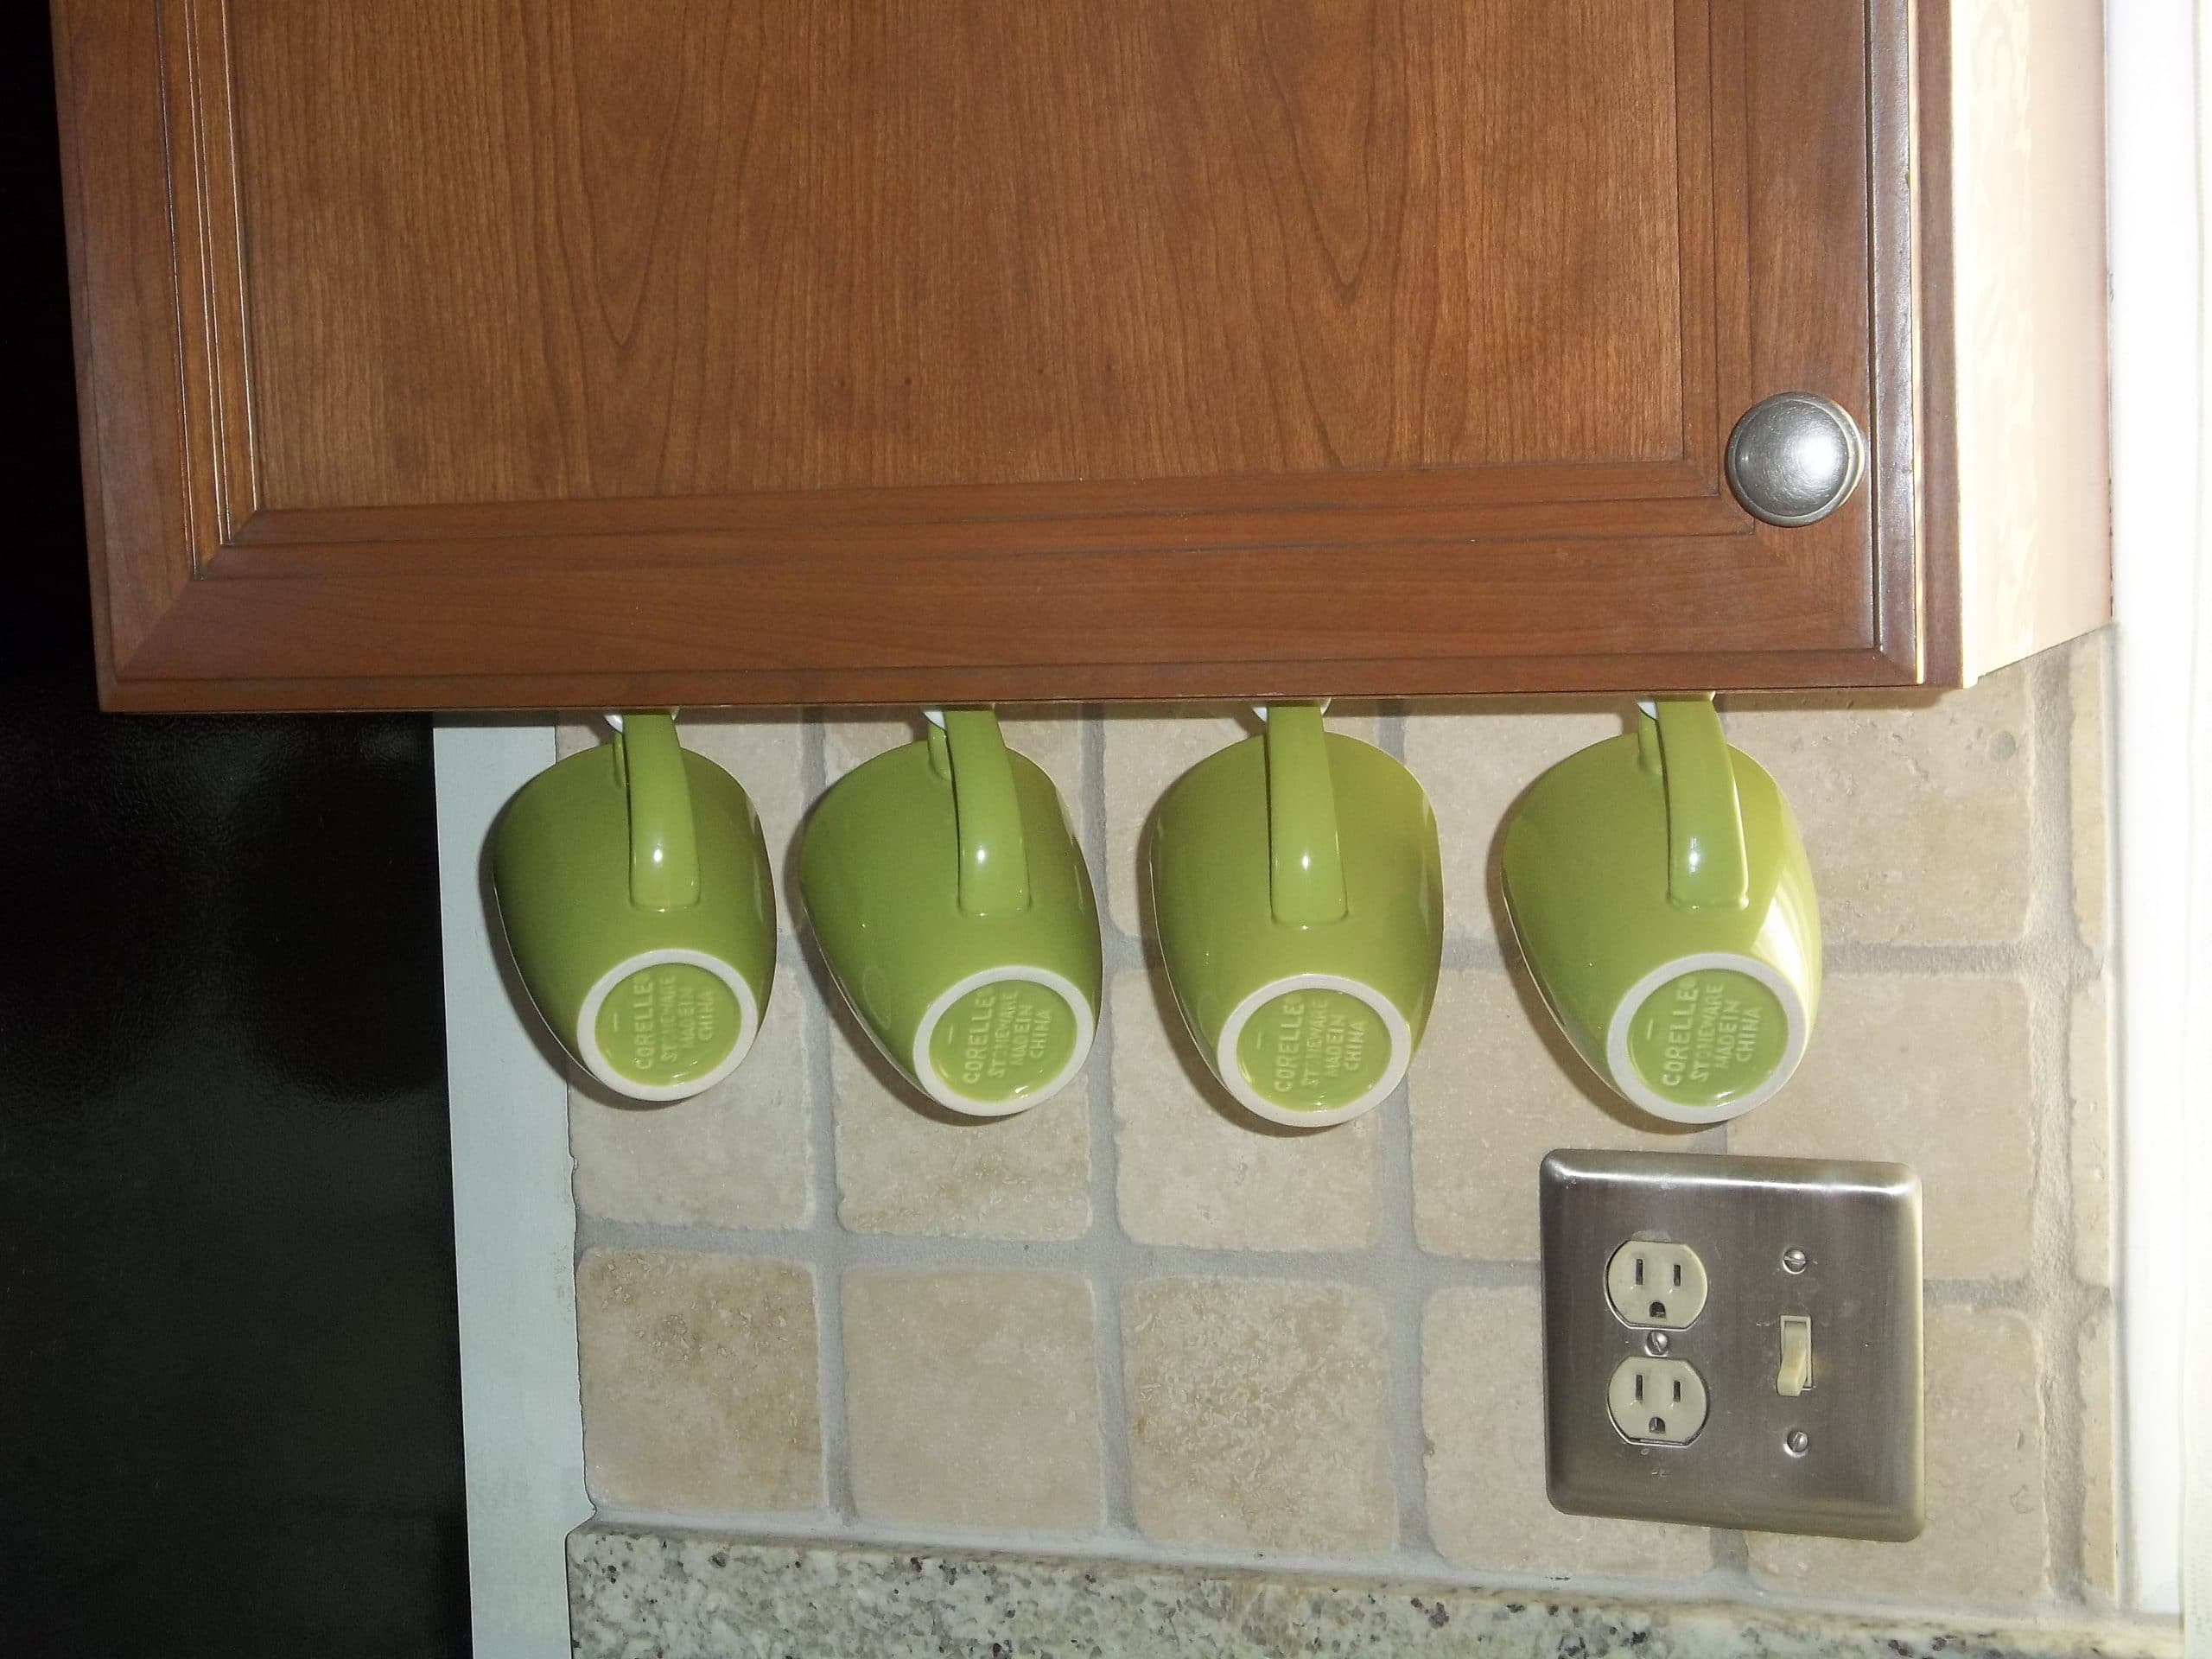 These green mugs add a nice splash of color to the kitchen.